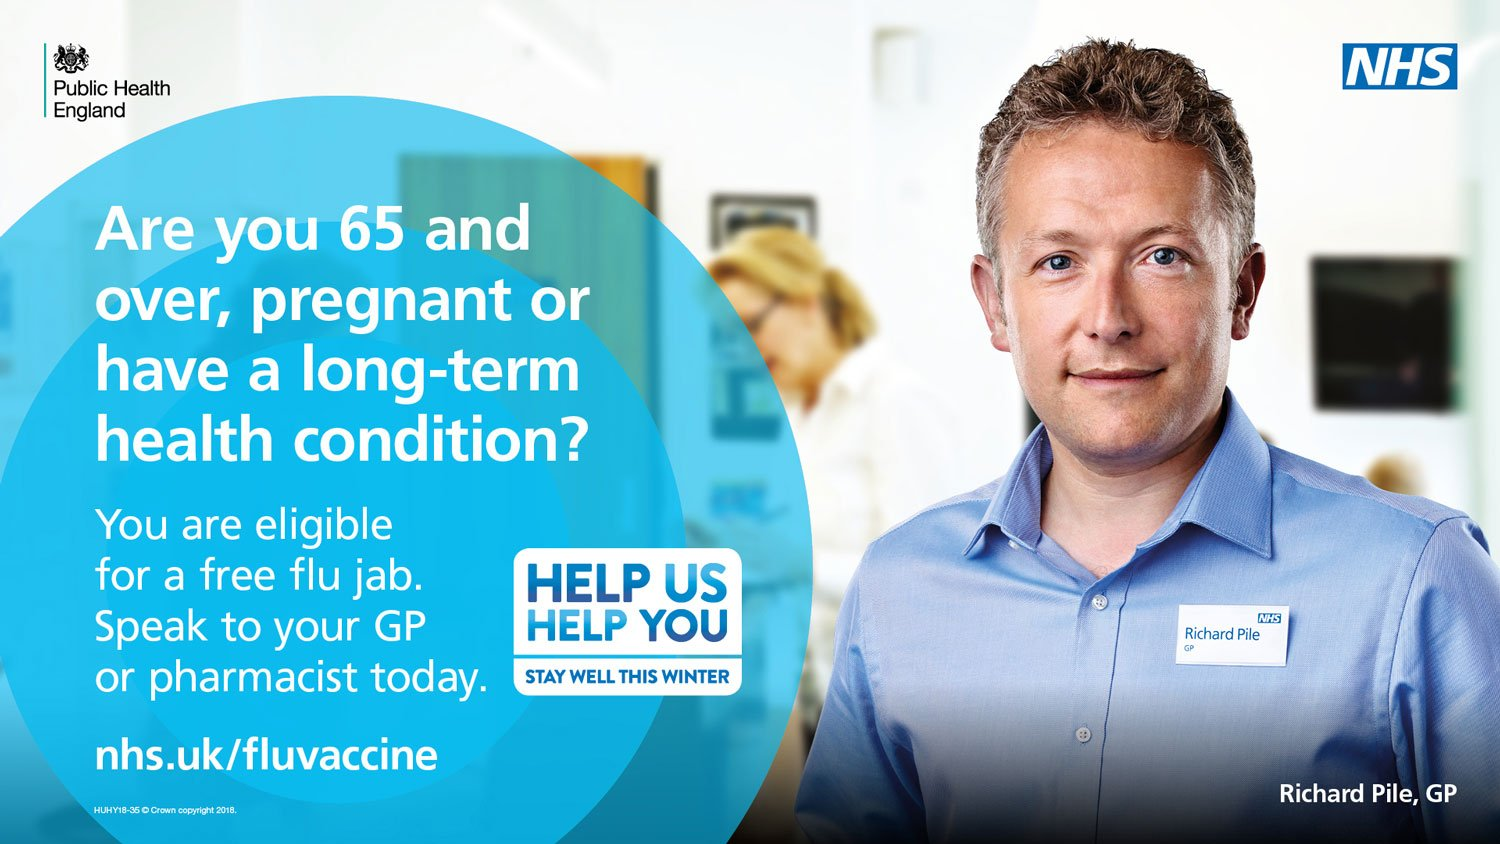 Help your patients Stay Well This Winter